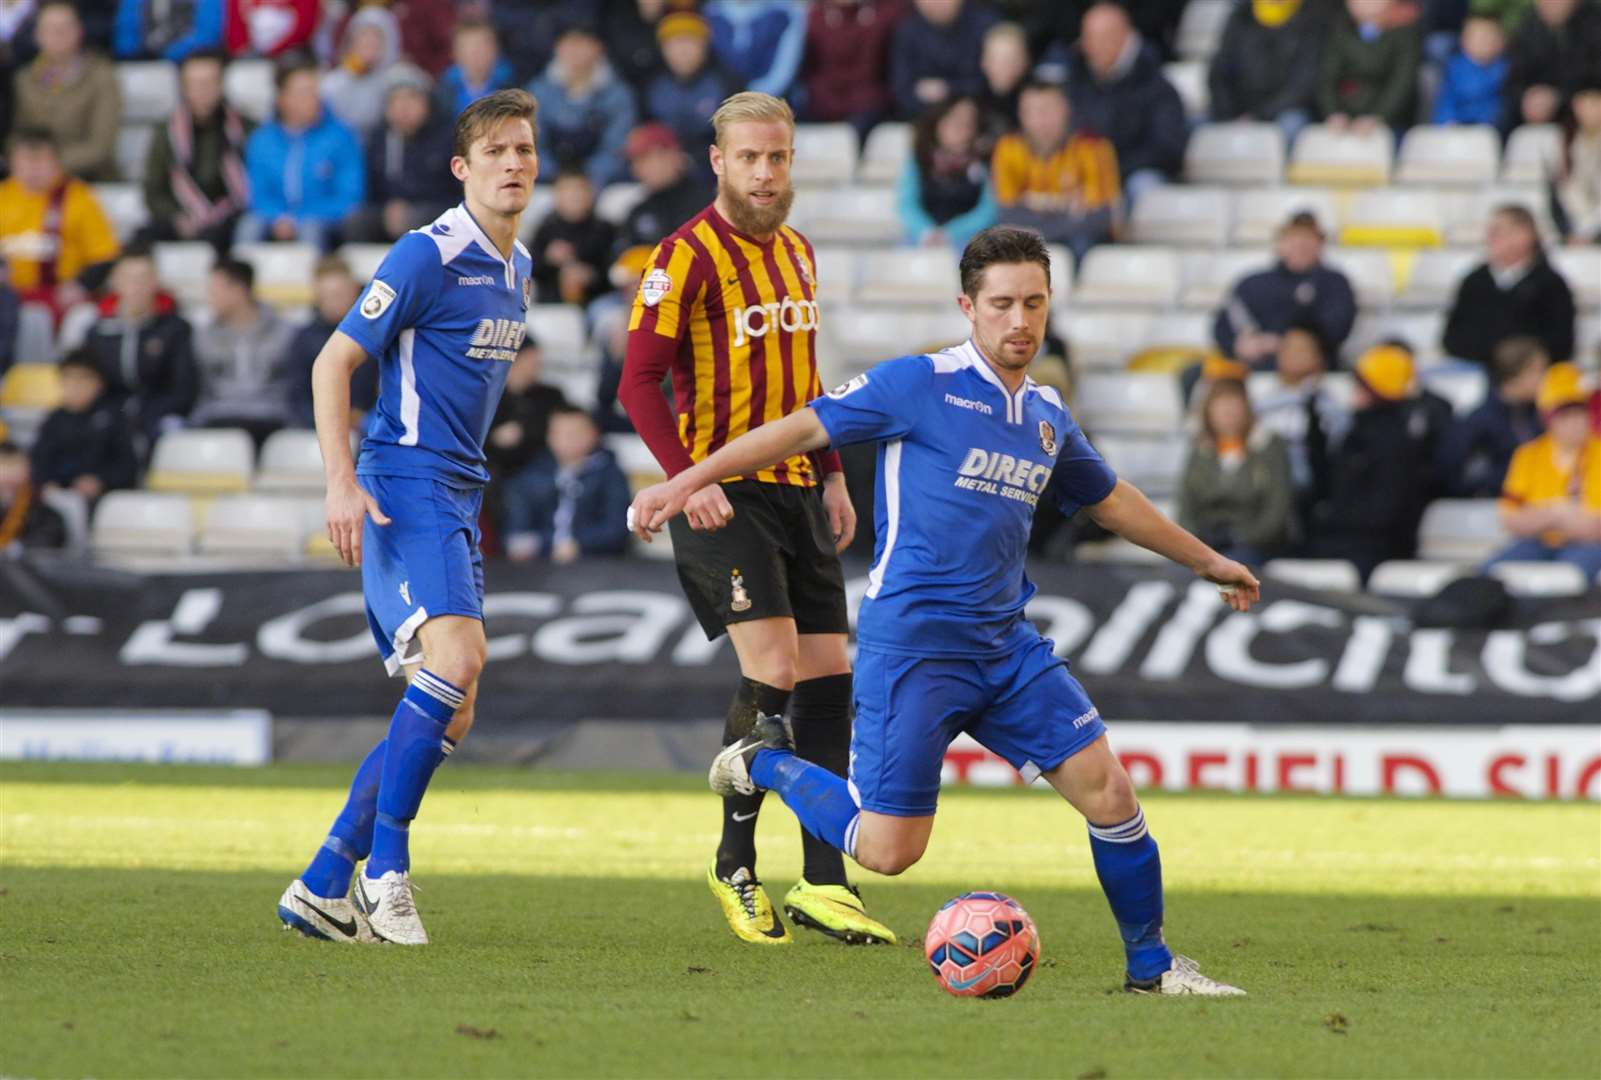 Lee Noble on the ball at Bradford Picture: Andy Payton